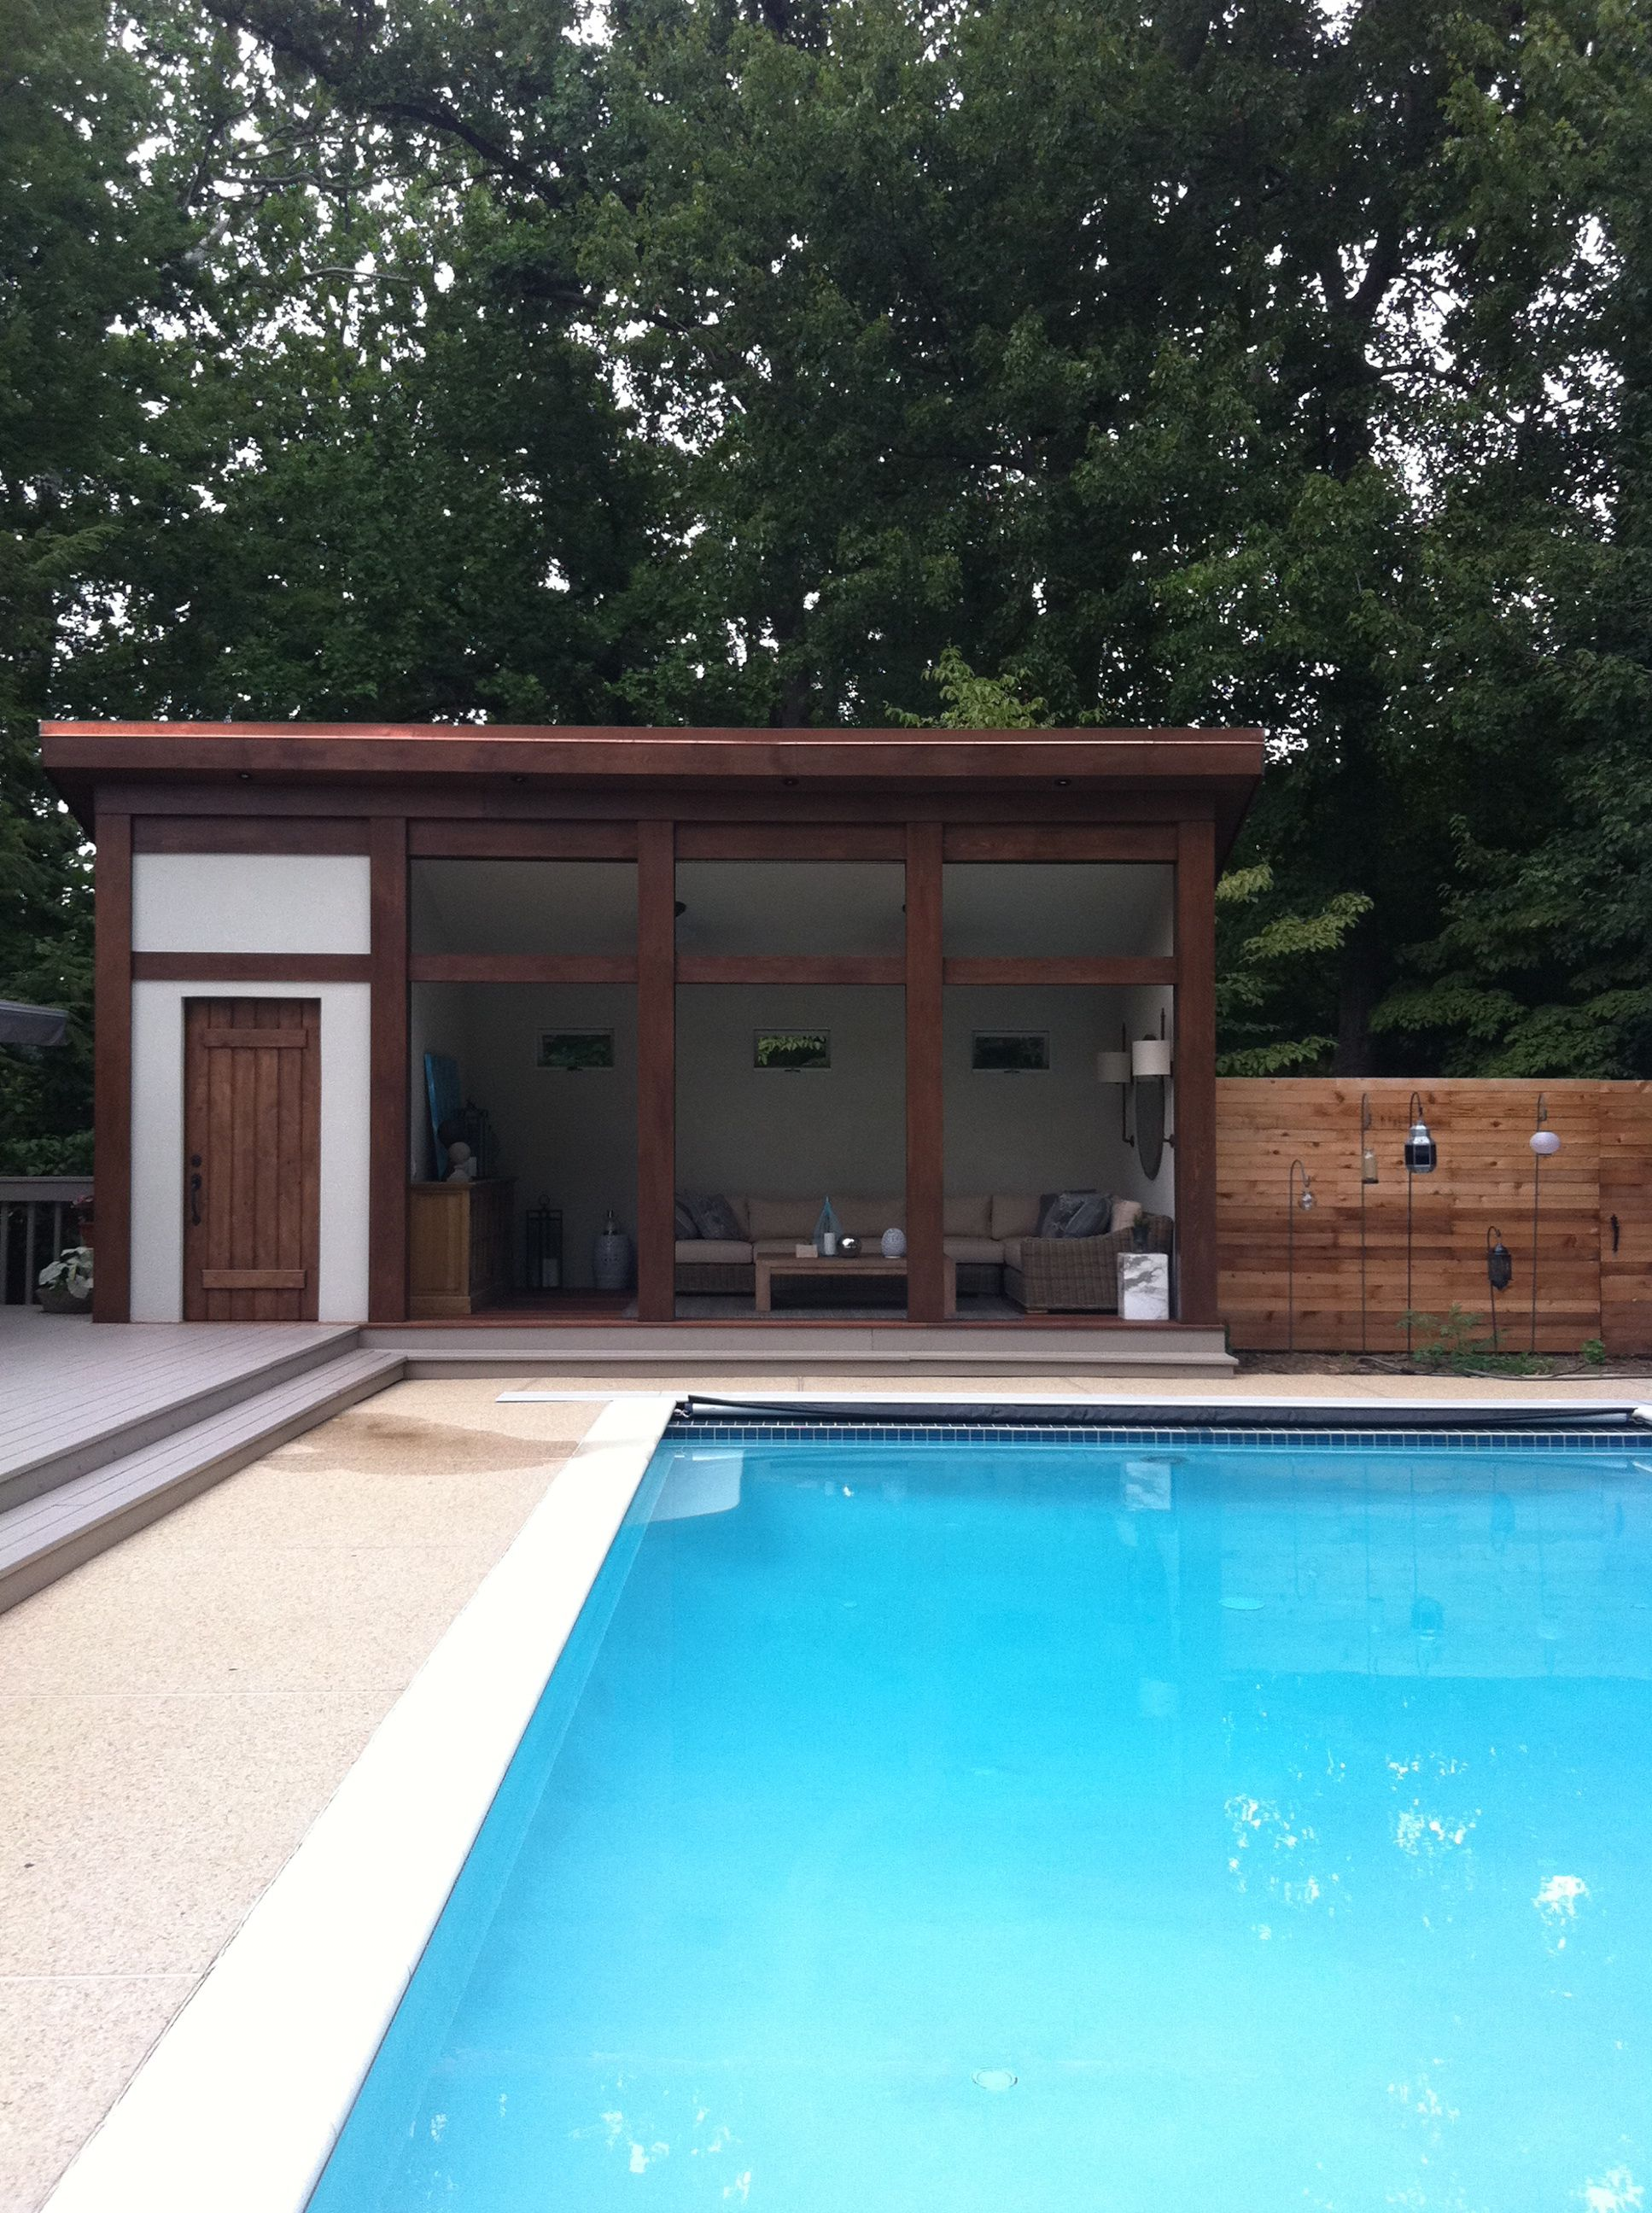 Pin By Emily On For The Pool Area Pool Houses Pool Cabana Pool House